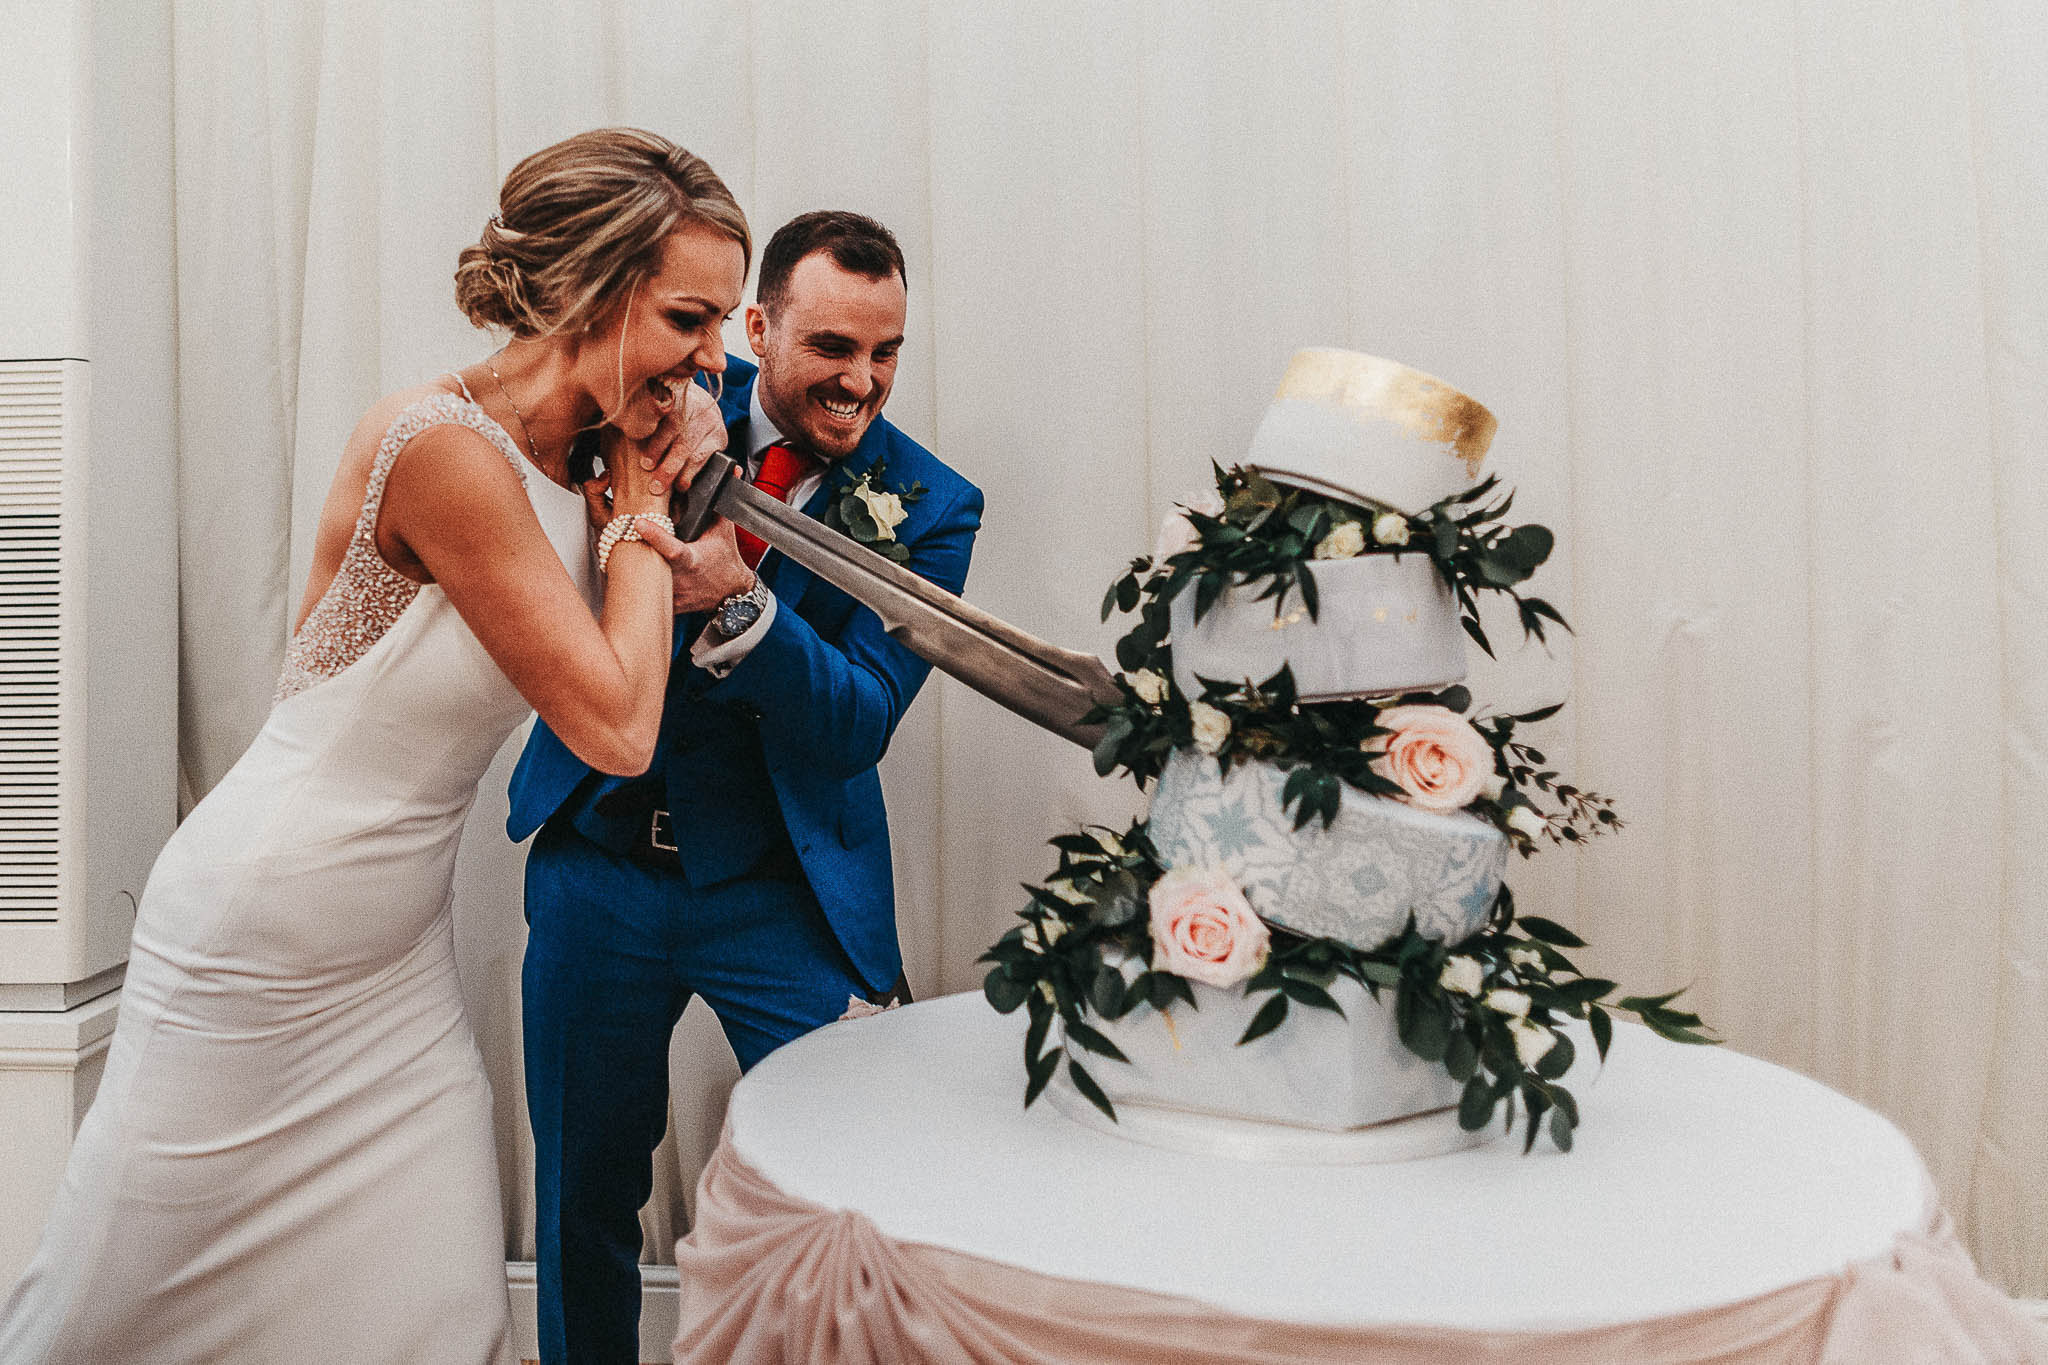 sword-cake-cutting